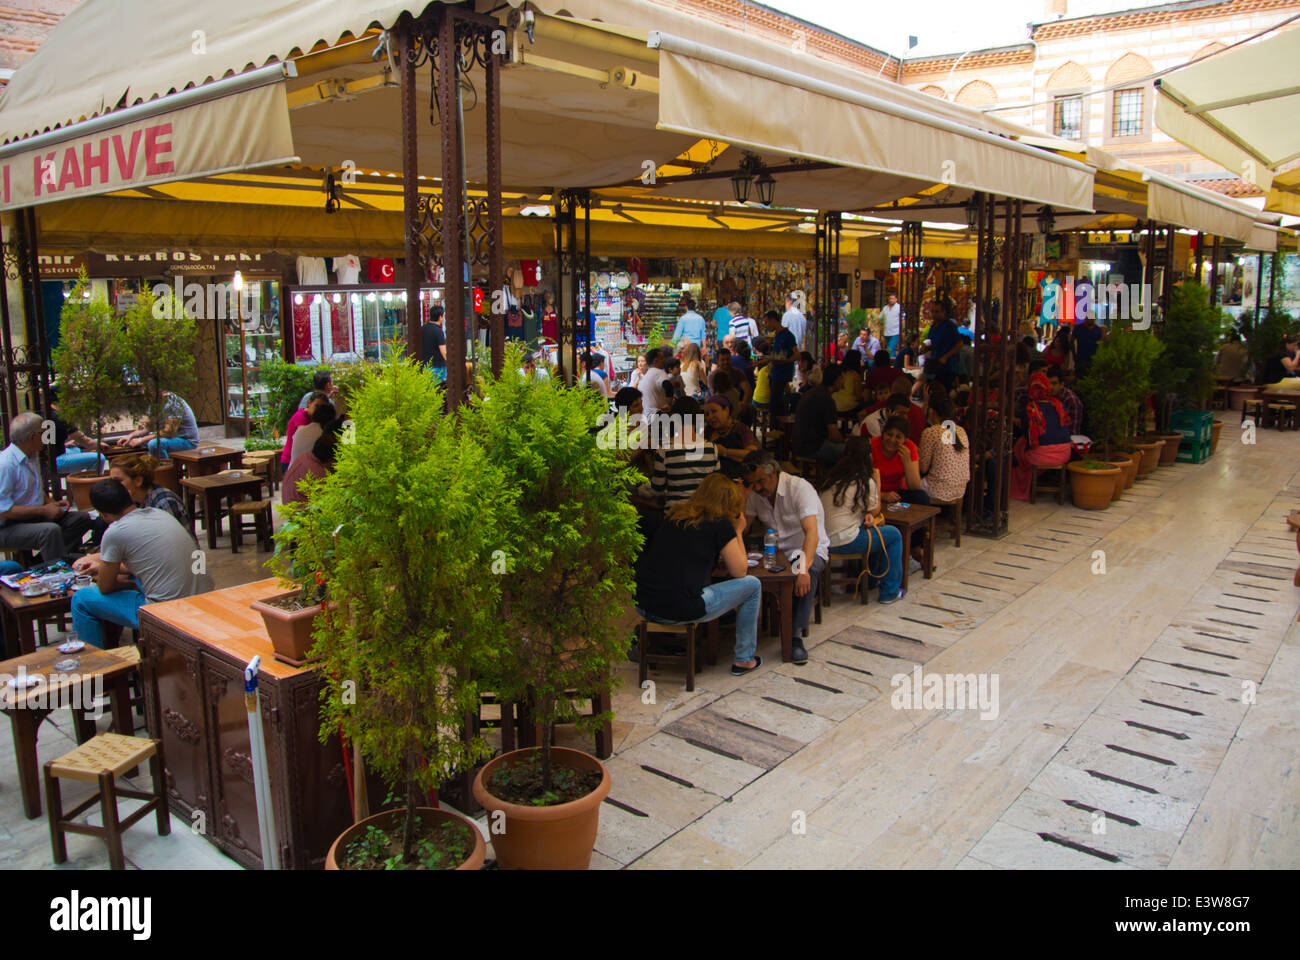 Terrasses, salon de thé bazar Kemeralti, central, Izmir, Turquie, Asie Mineure Photo Stock